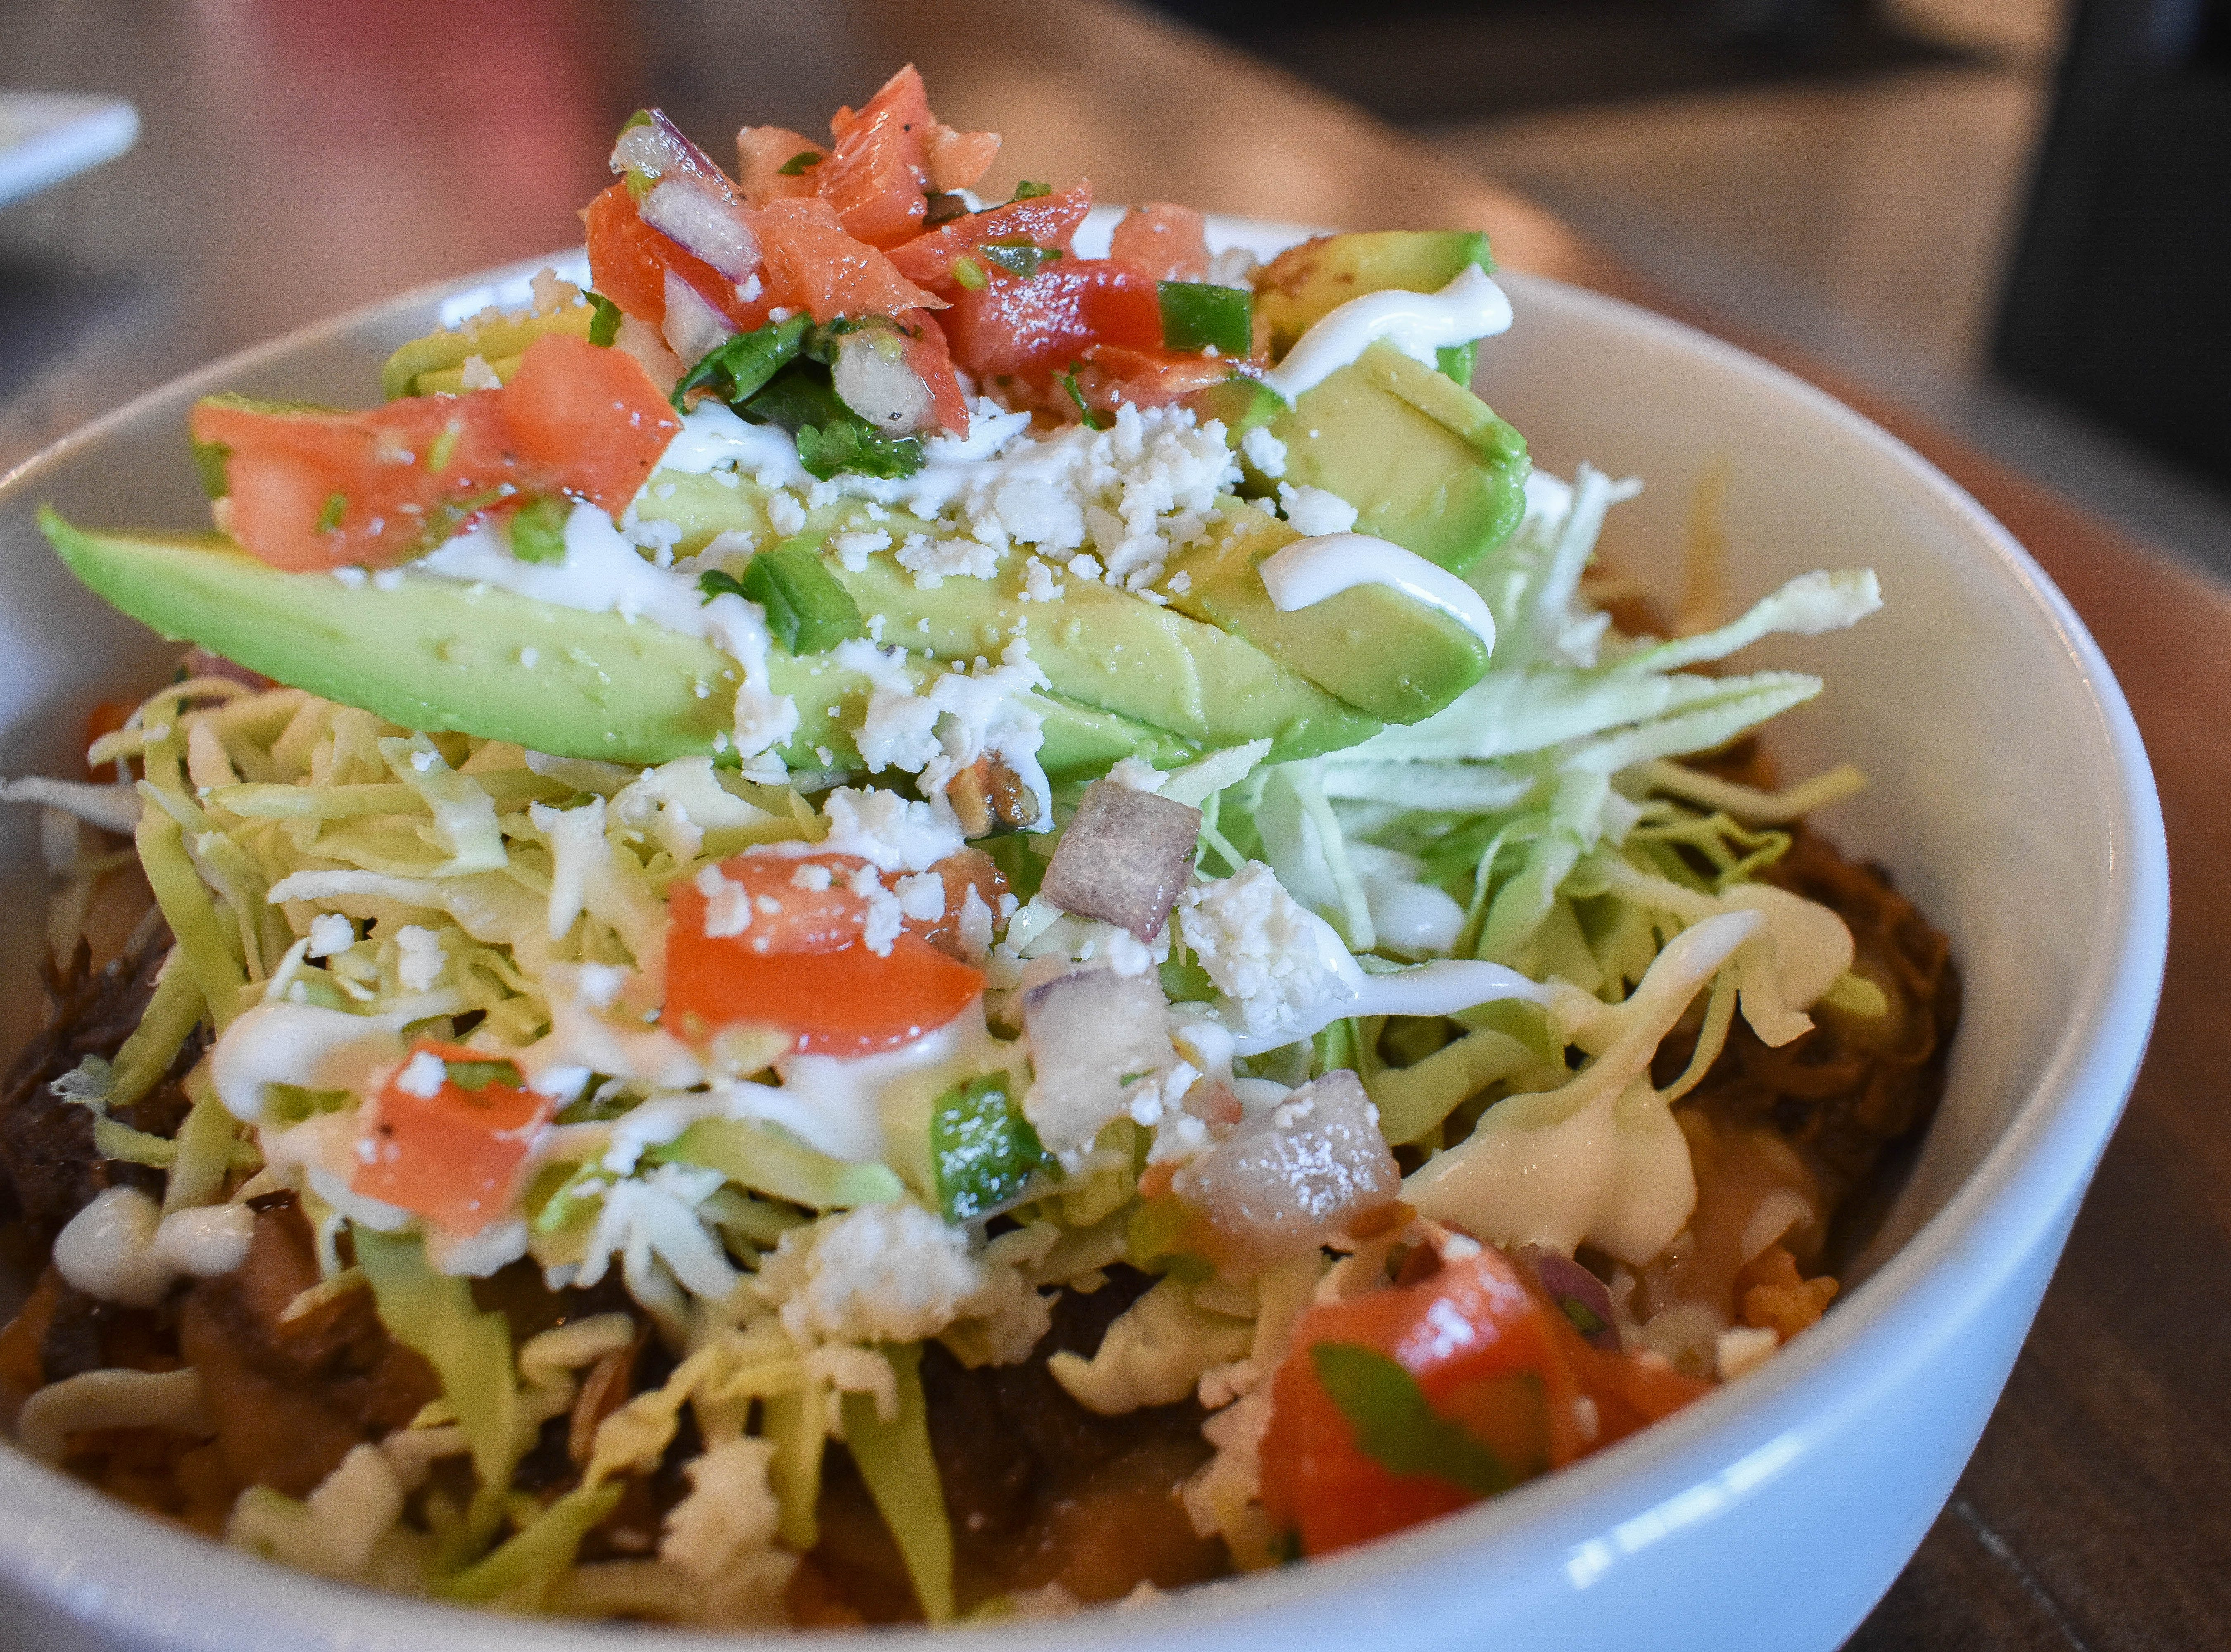 PAZ CANTINA: Buy one entree and get a secondfor half off. Wash it down with buy-one, get-one-for-a-penny draft beers.